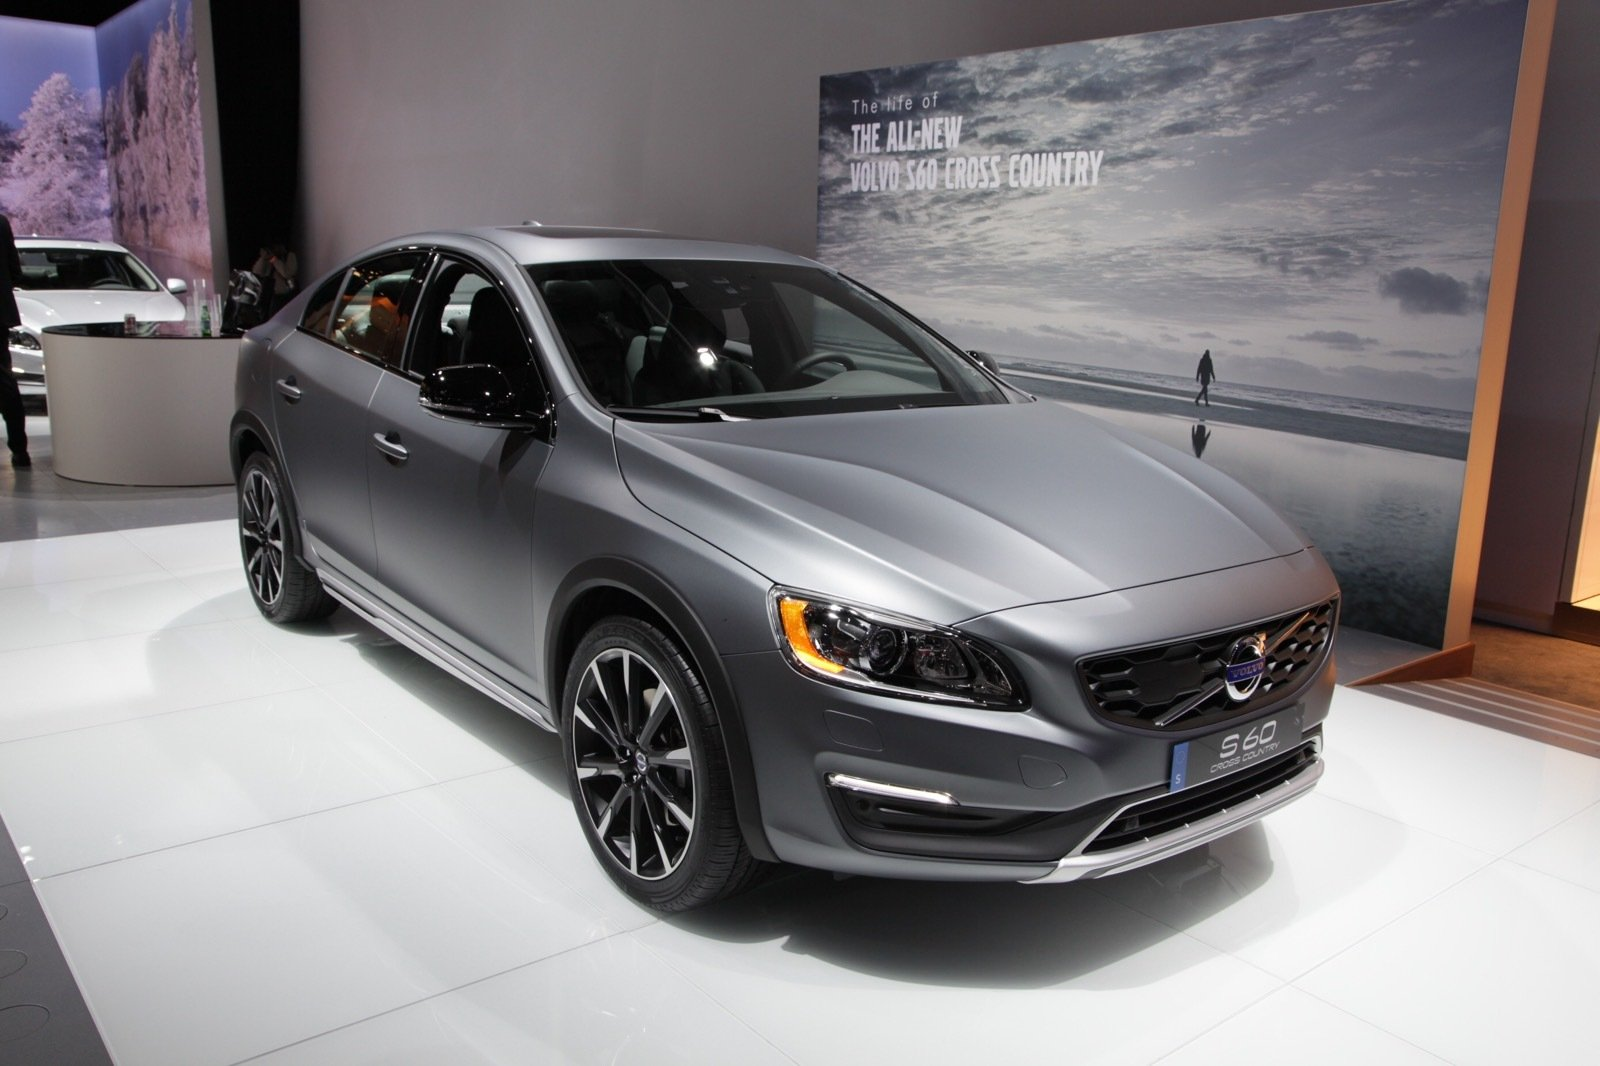 2016 volvo s60 cross country picture 612897 car review top speed. Black Bedroom Furniture Sets. Home Design Ideas